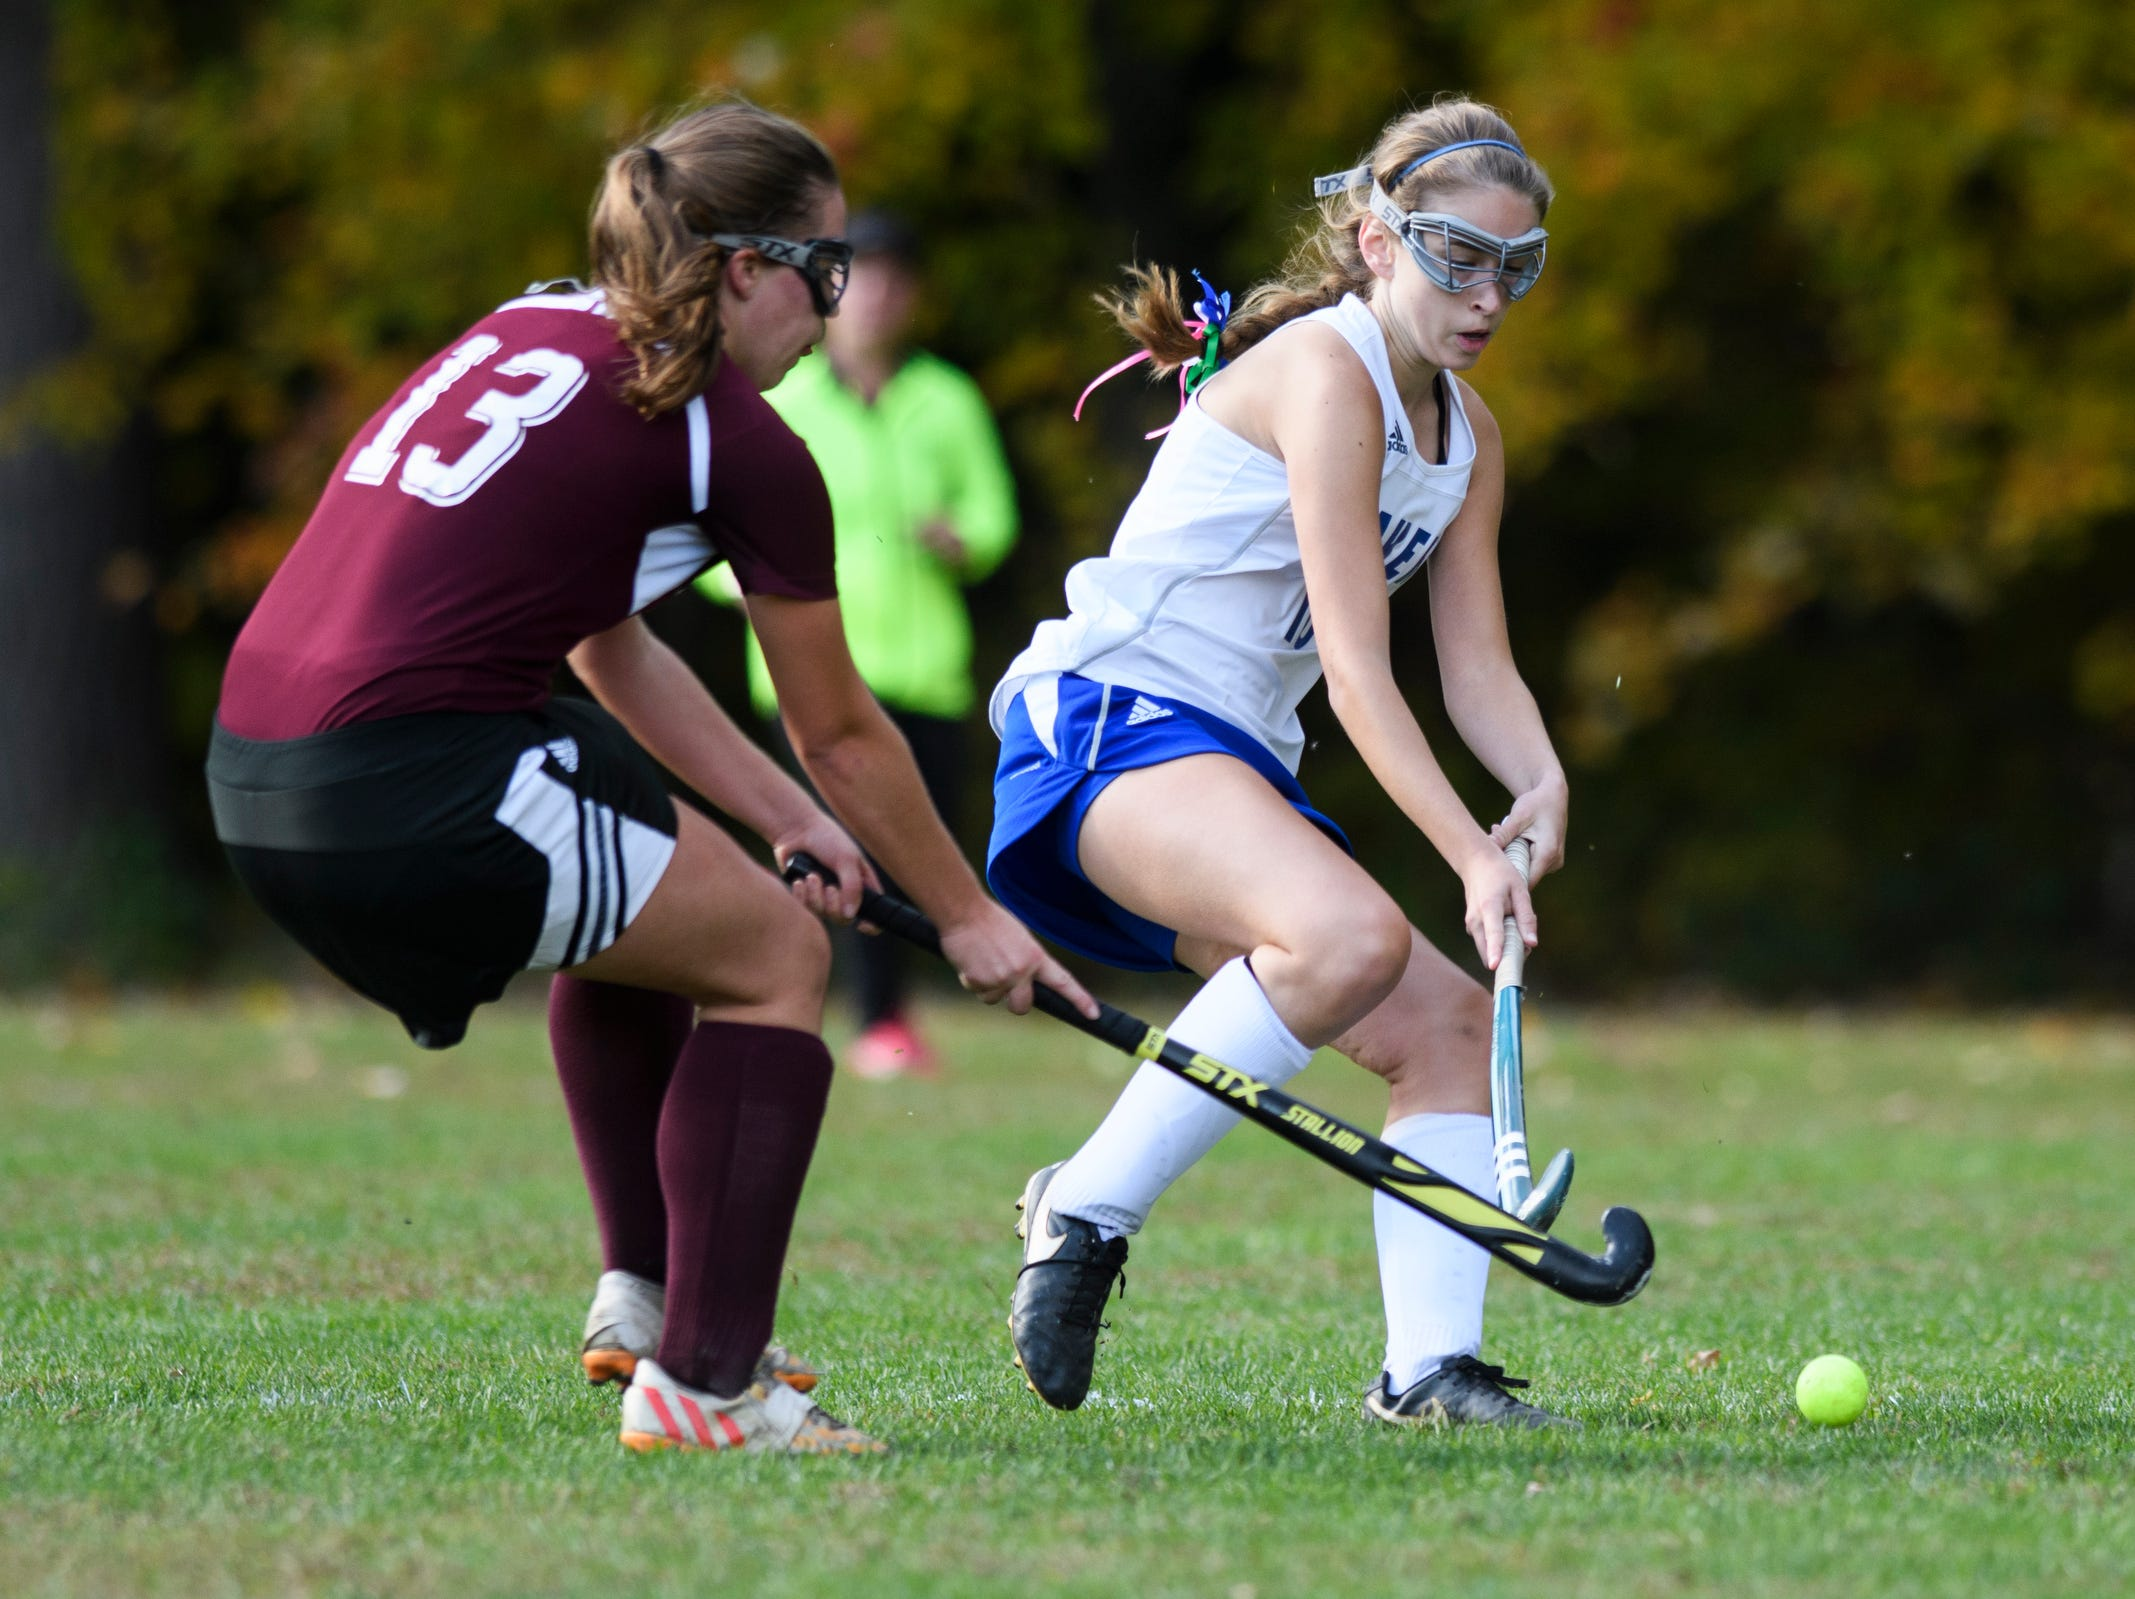 Colchester's Hannah Carroll (10) and Mt. Abraham's Abby Hoff (13) battle for the ball during the field hockey game between Mount Abraham and Colchester at Colchester High School on Saturday morning October 20, 2018 in Colchester.